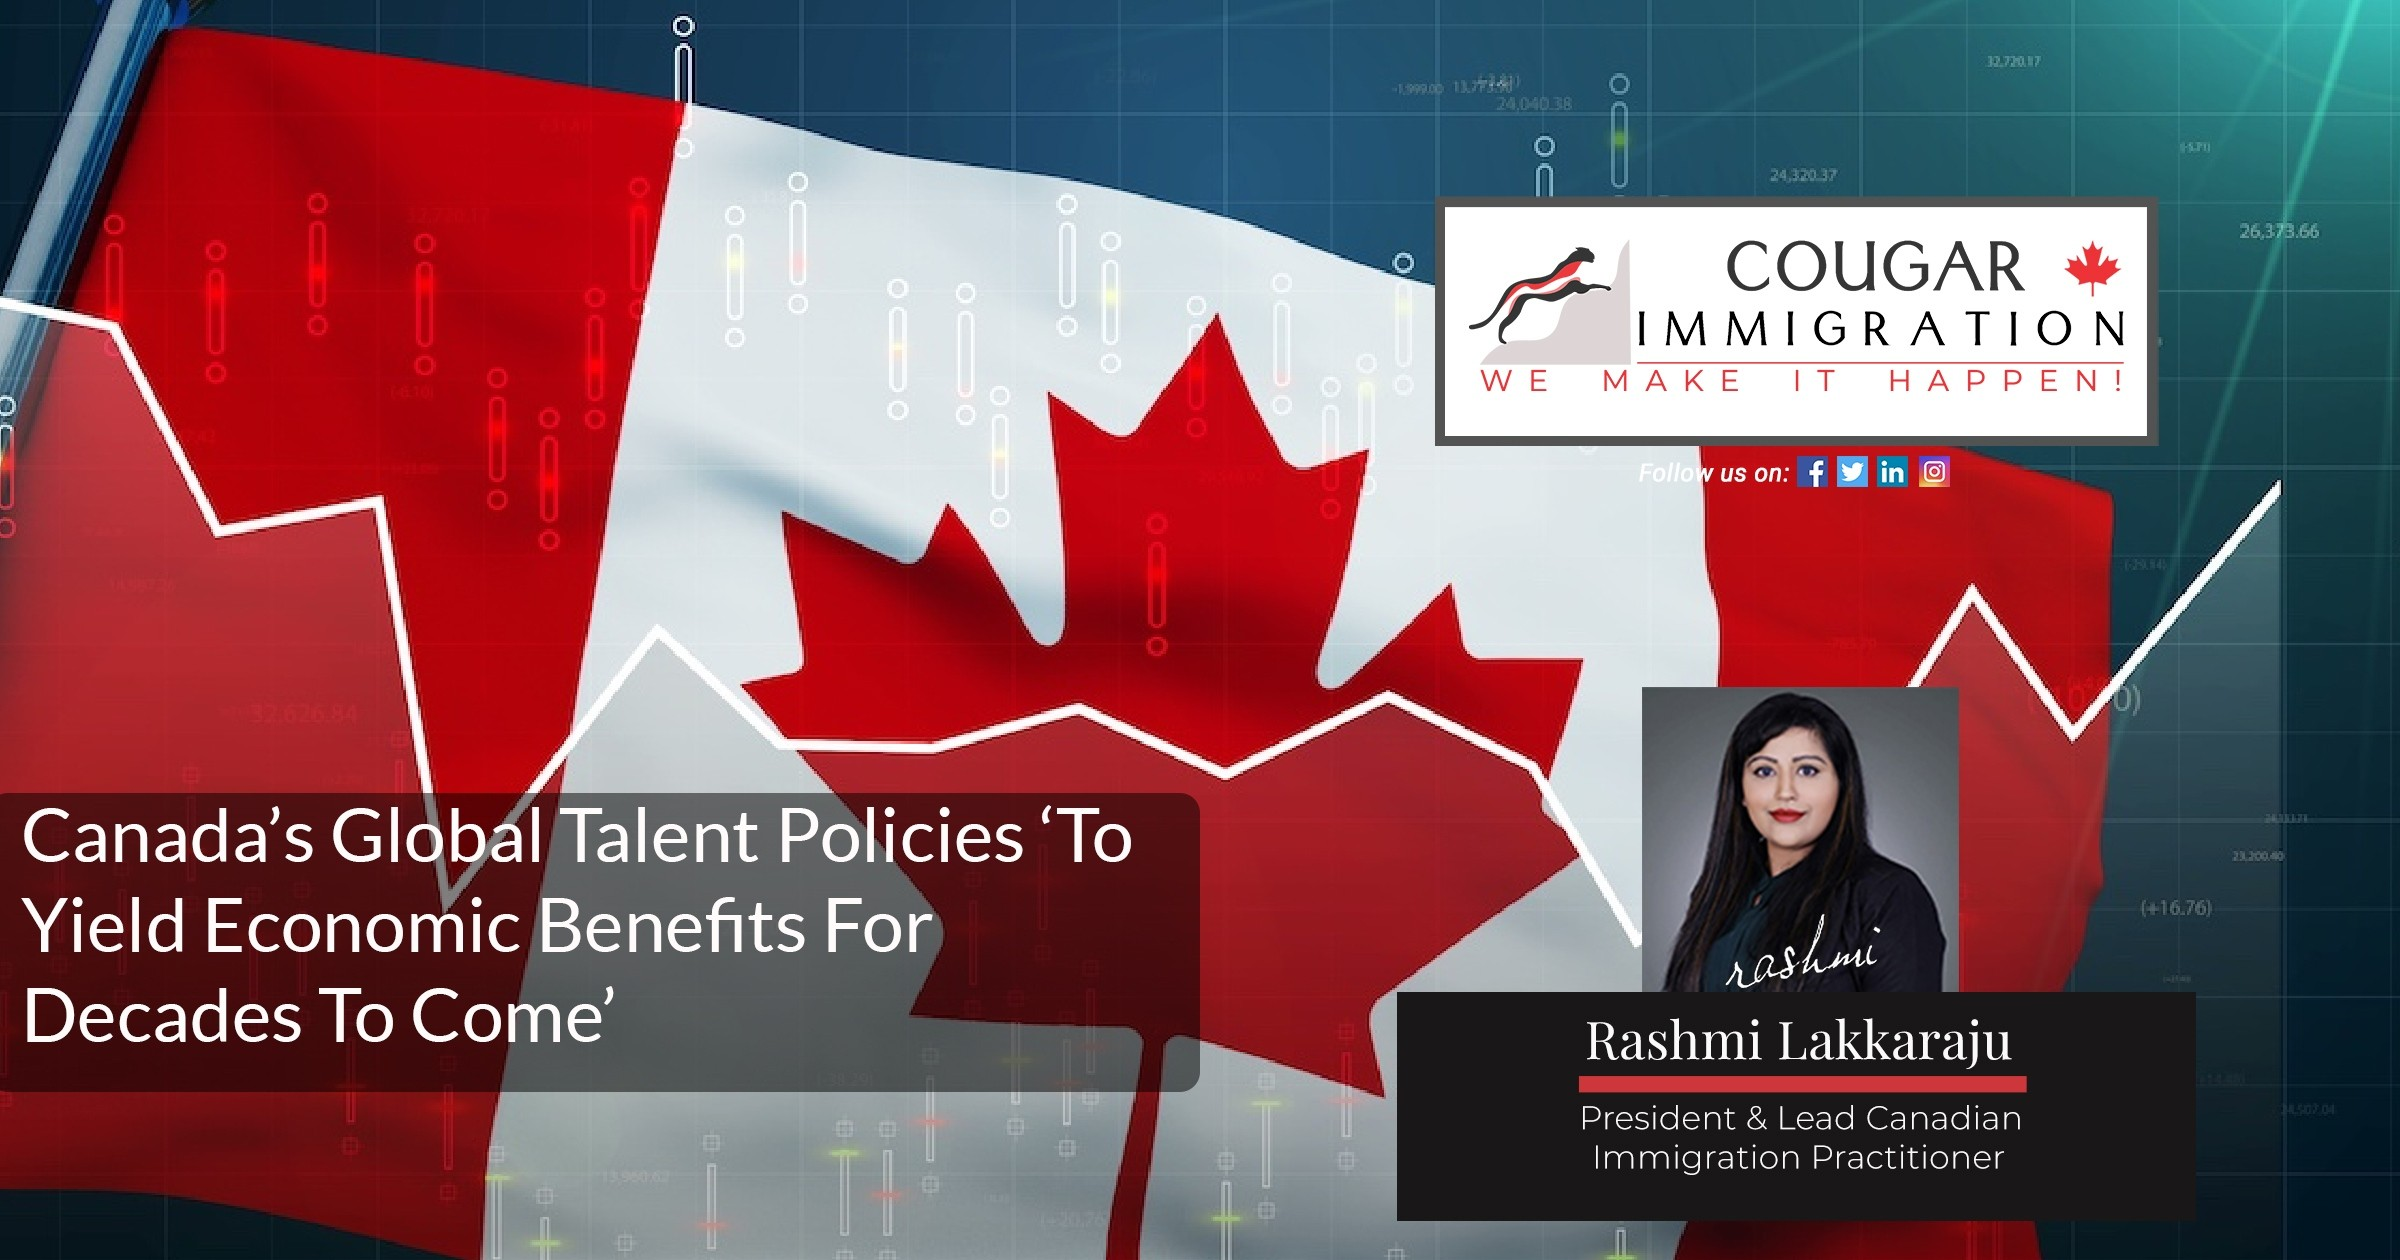 Canada's Global Talent Policies 'To Yield Economic Benefits For Decades To Come